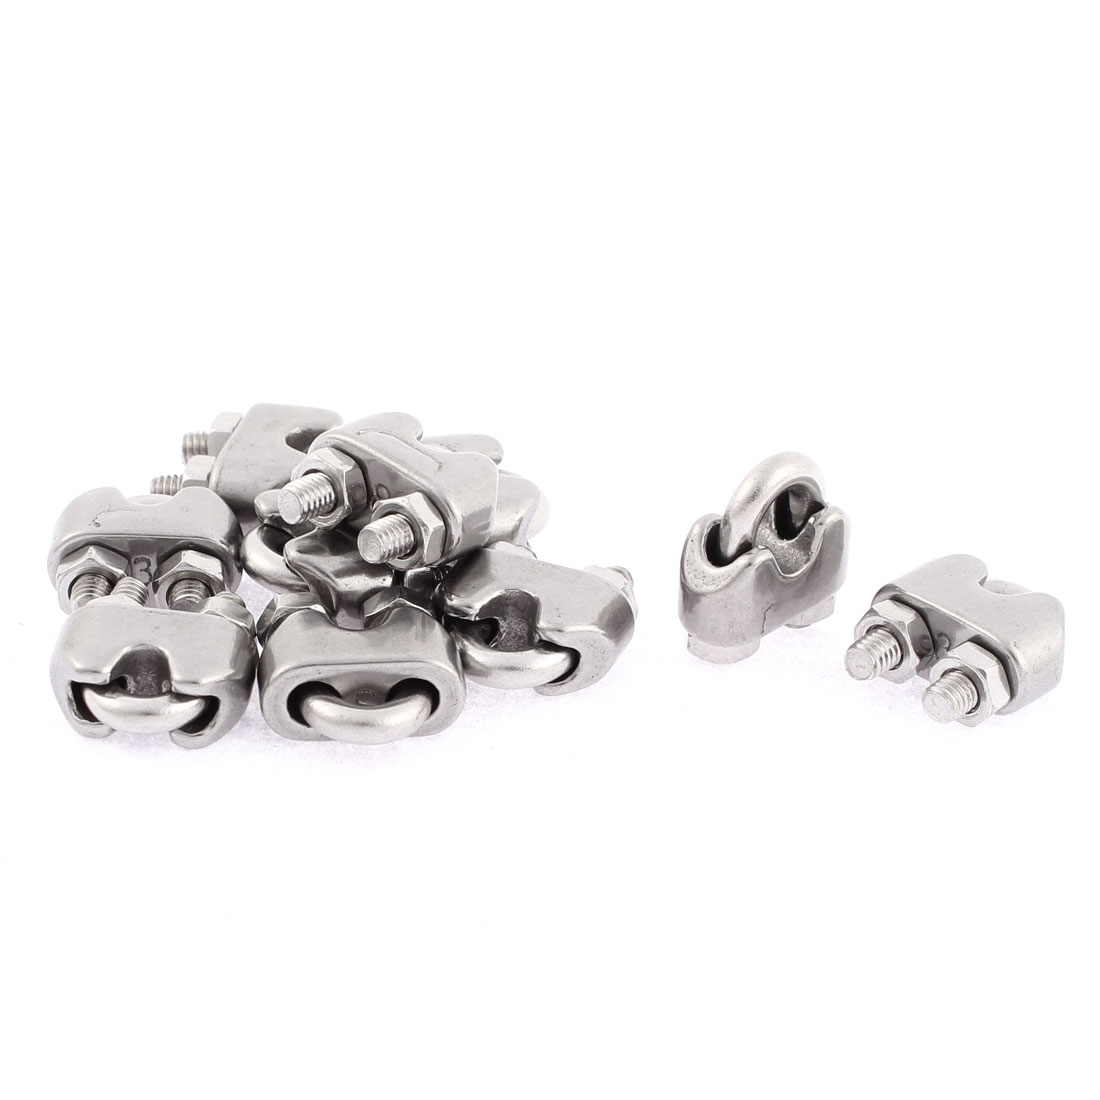 M3 Wire Rope Clip Cable Clamp Fastener Silver Tone 10pcs